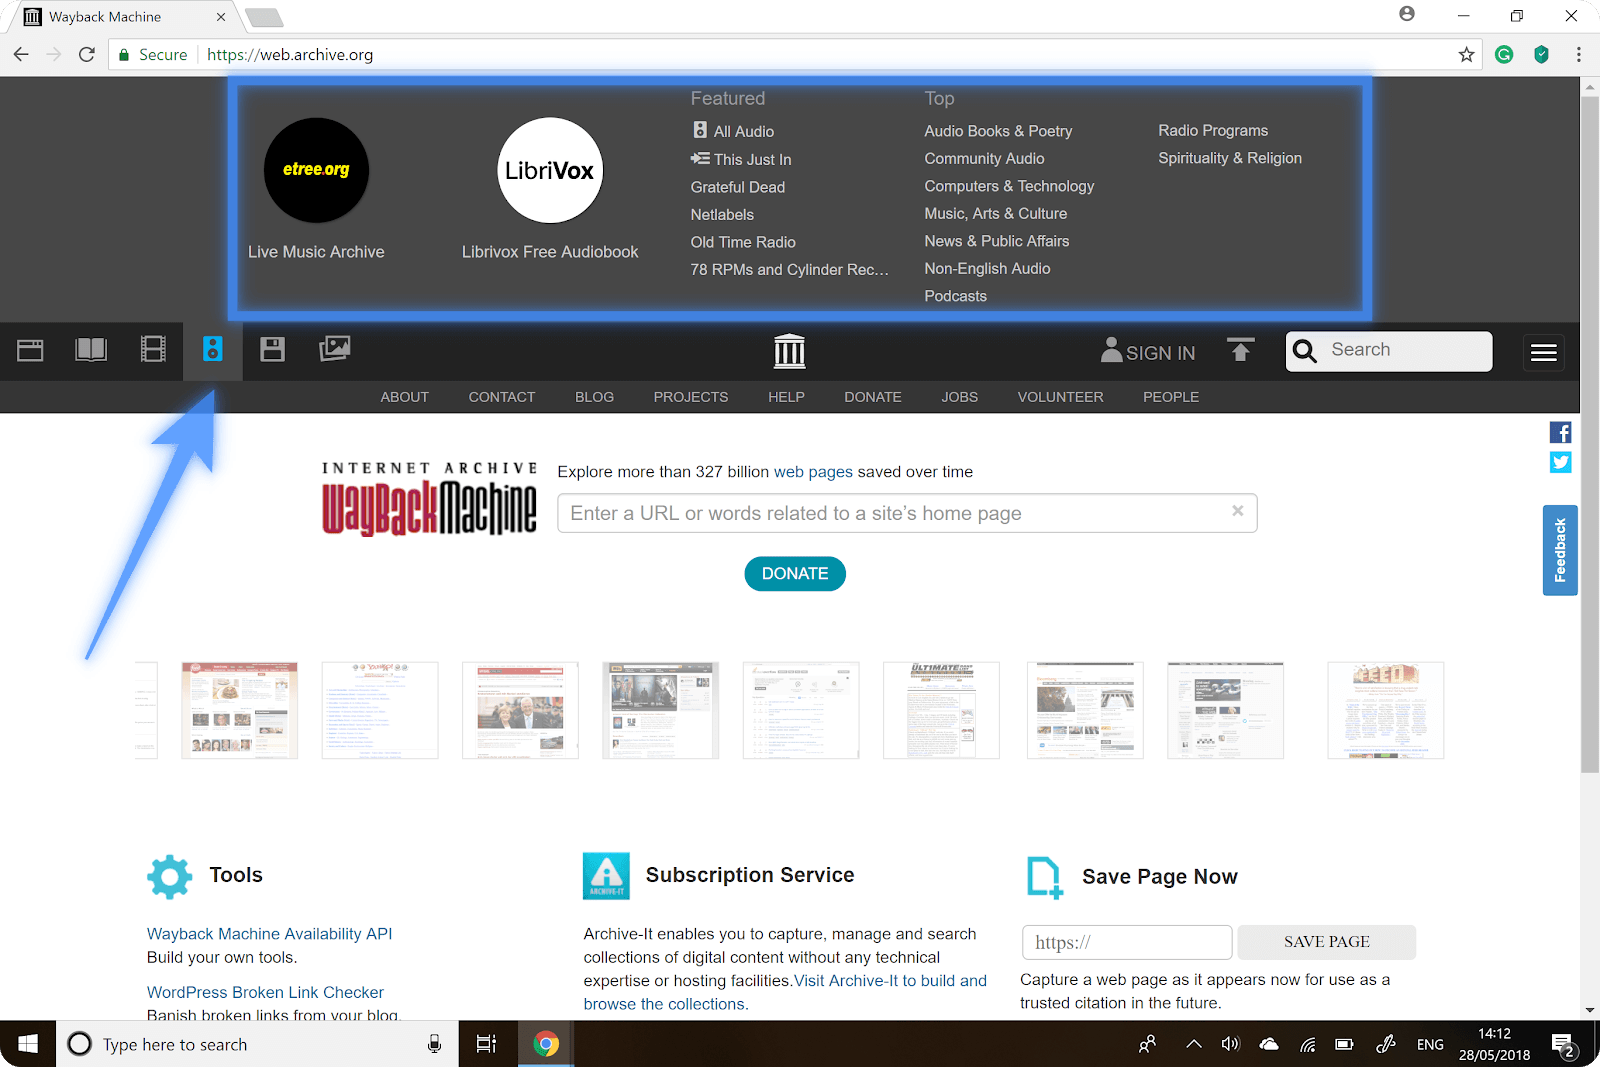 How to Use Wayback Machine: The Archived Web Pages - WebForPC